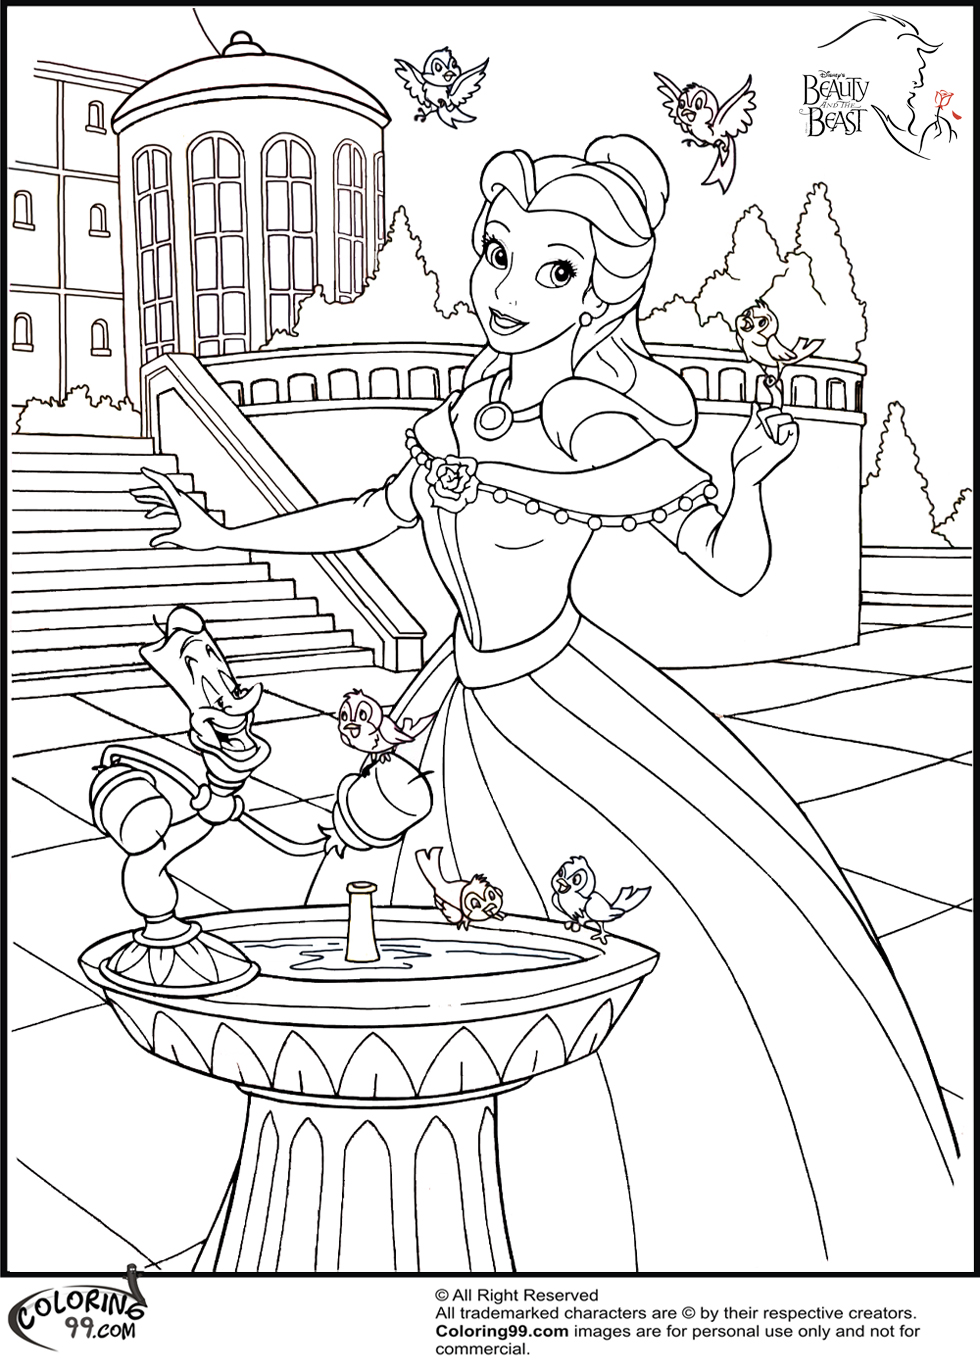 belle coloring pages disney - disney princess belle coloring pages minister coloring